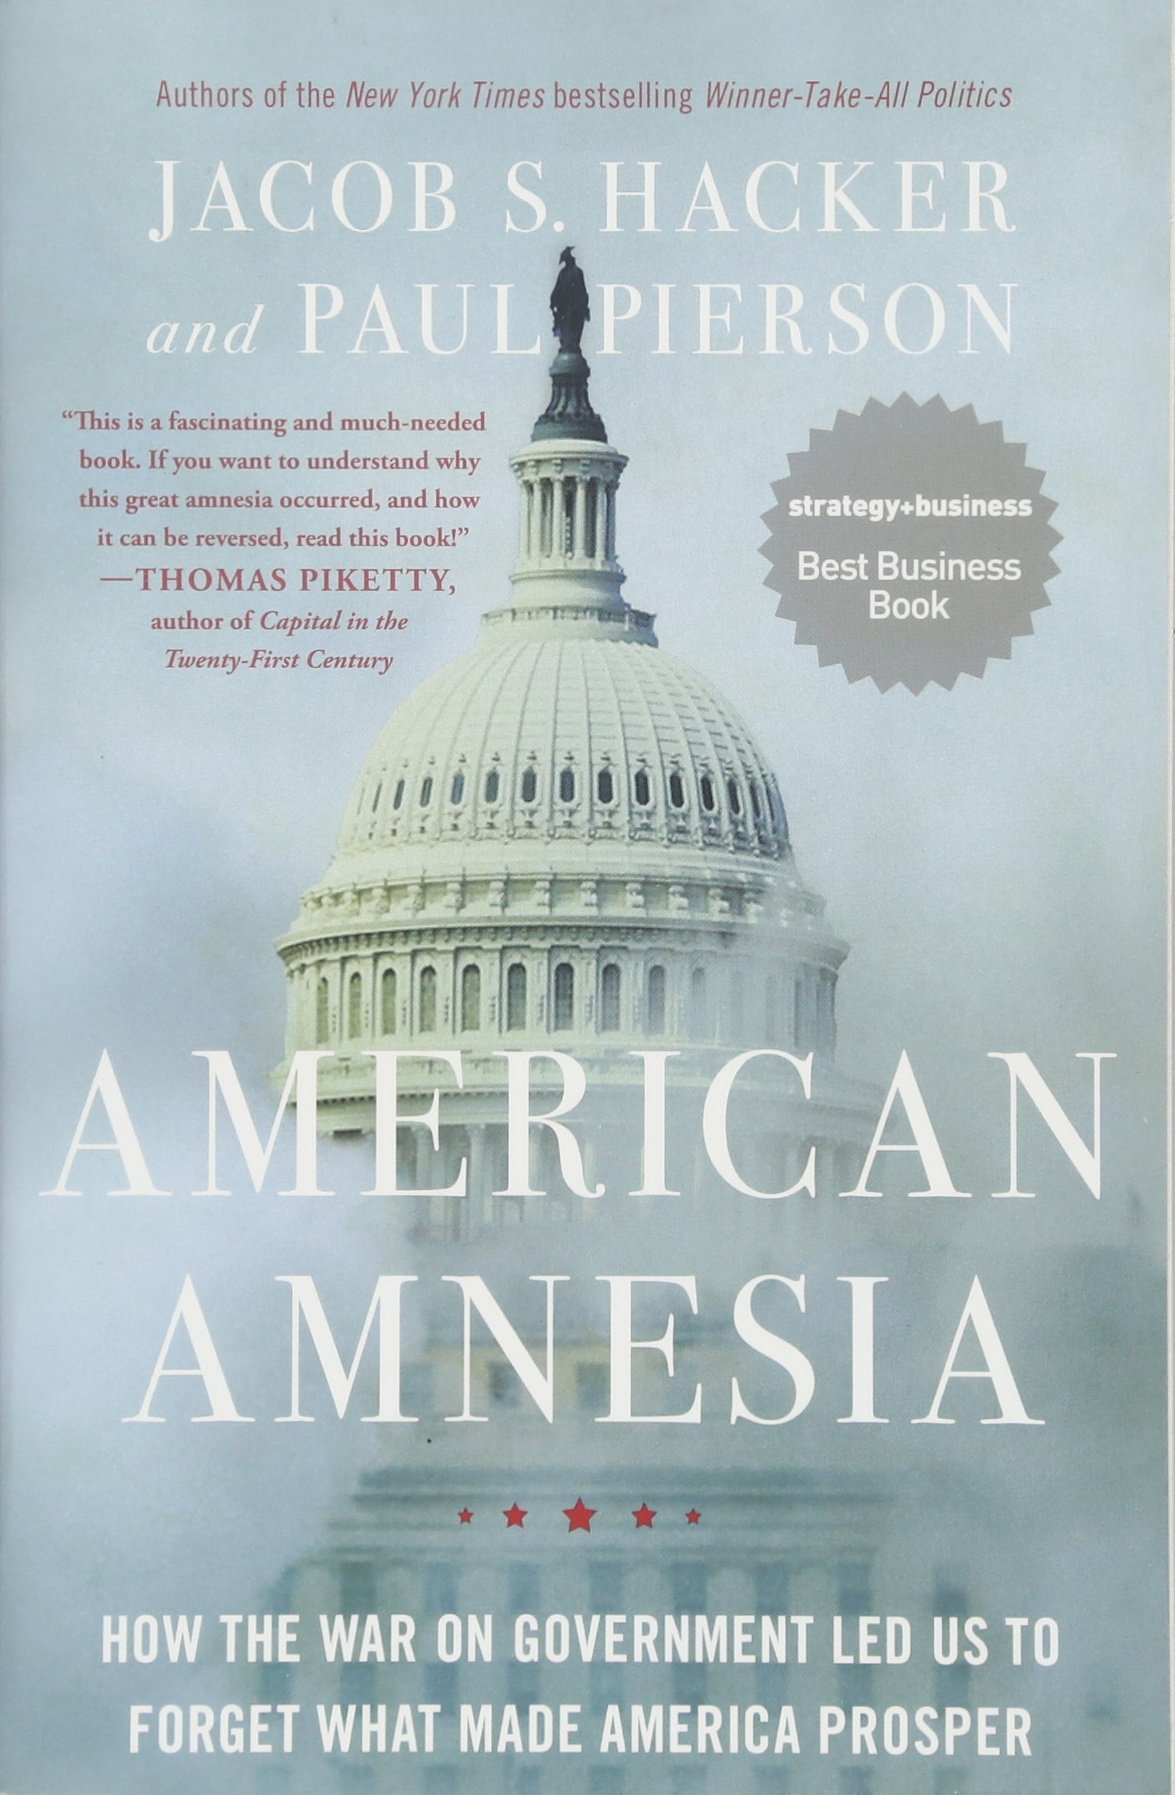 American Amnesia: How the War on Government Led Us to Forget What Made  America Prosper: Jacob S. Hacker, Paul Pierson: 9781451667837: Amazon.com:  Books